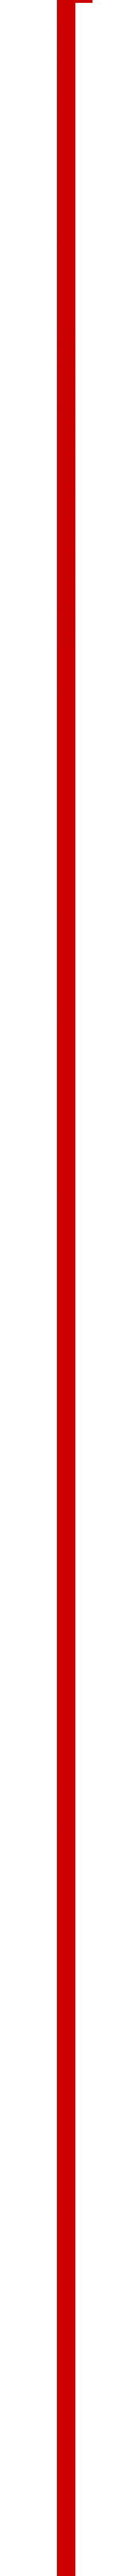 red line-nb.png